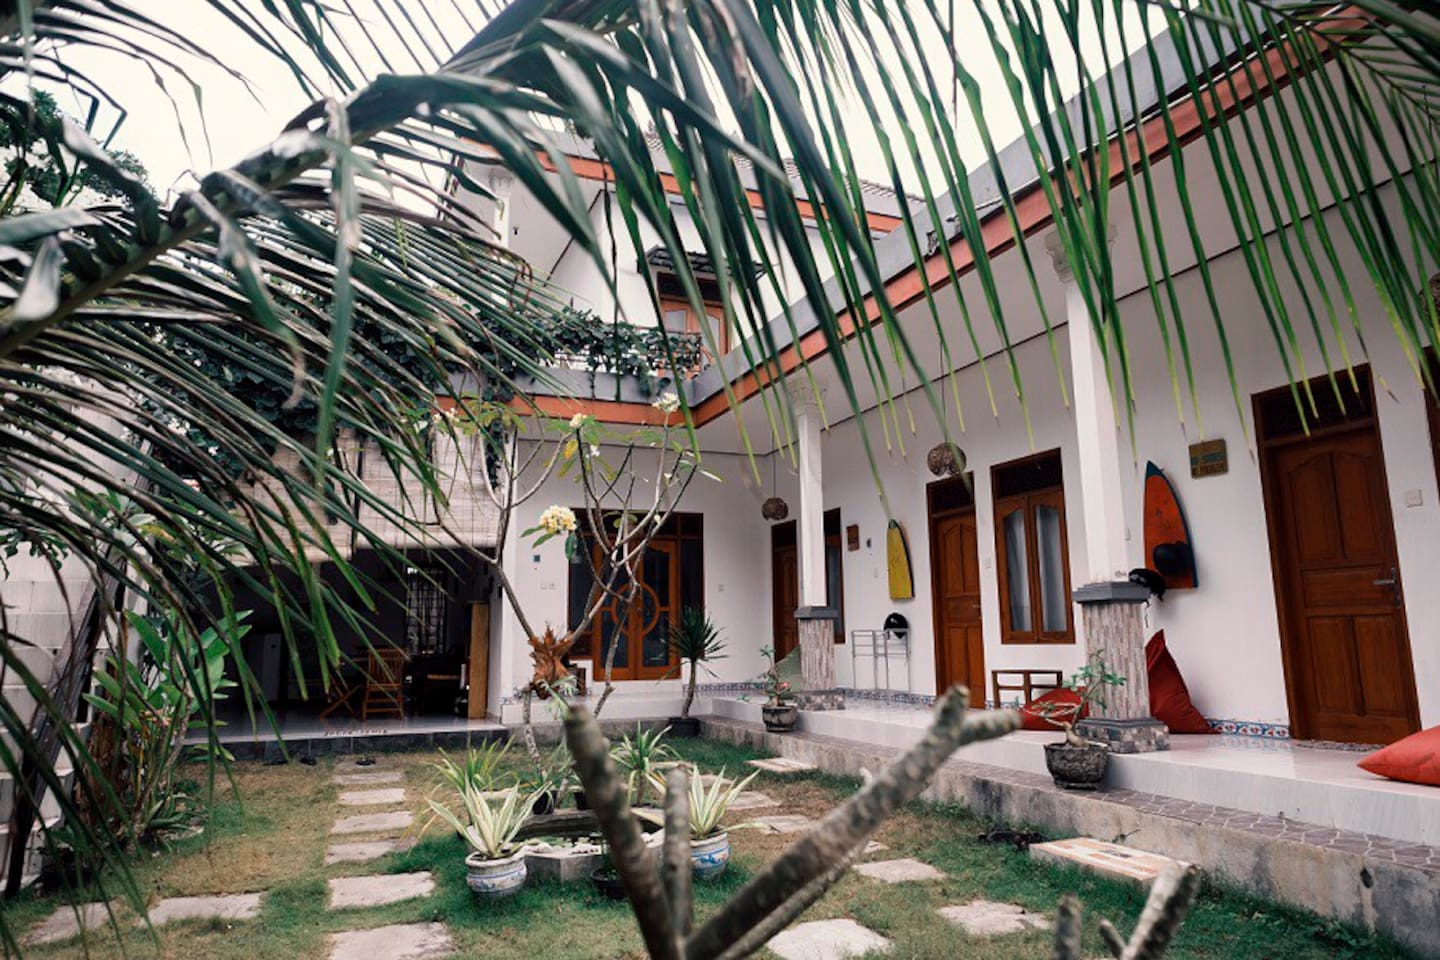 2 Angels Homestay - Overview of the property